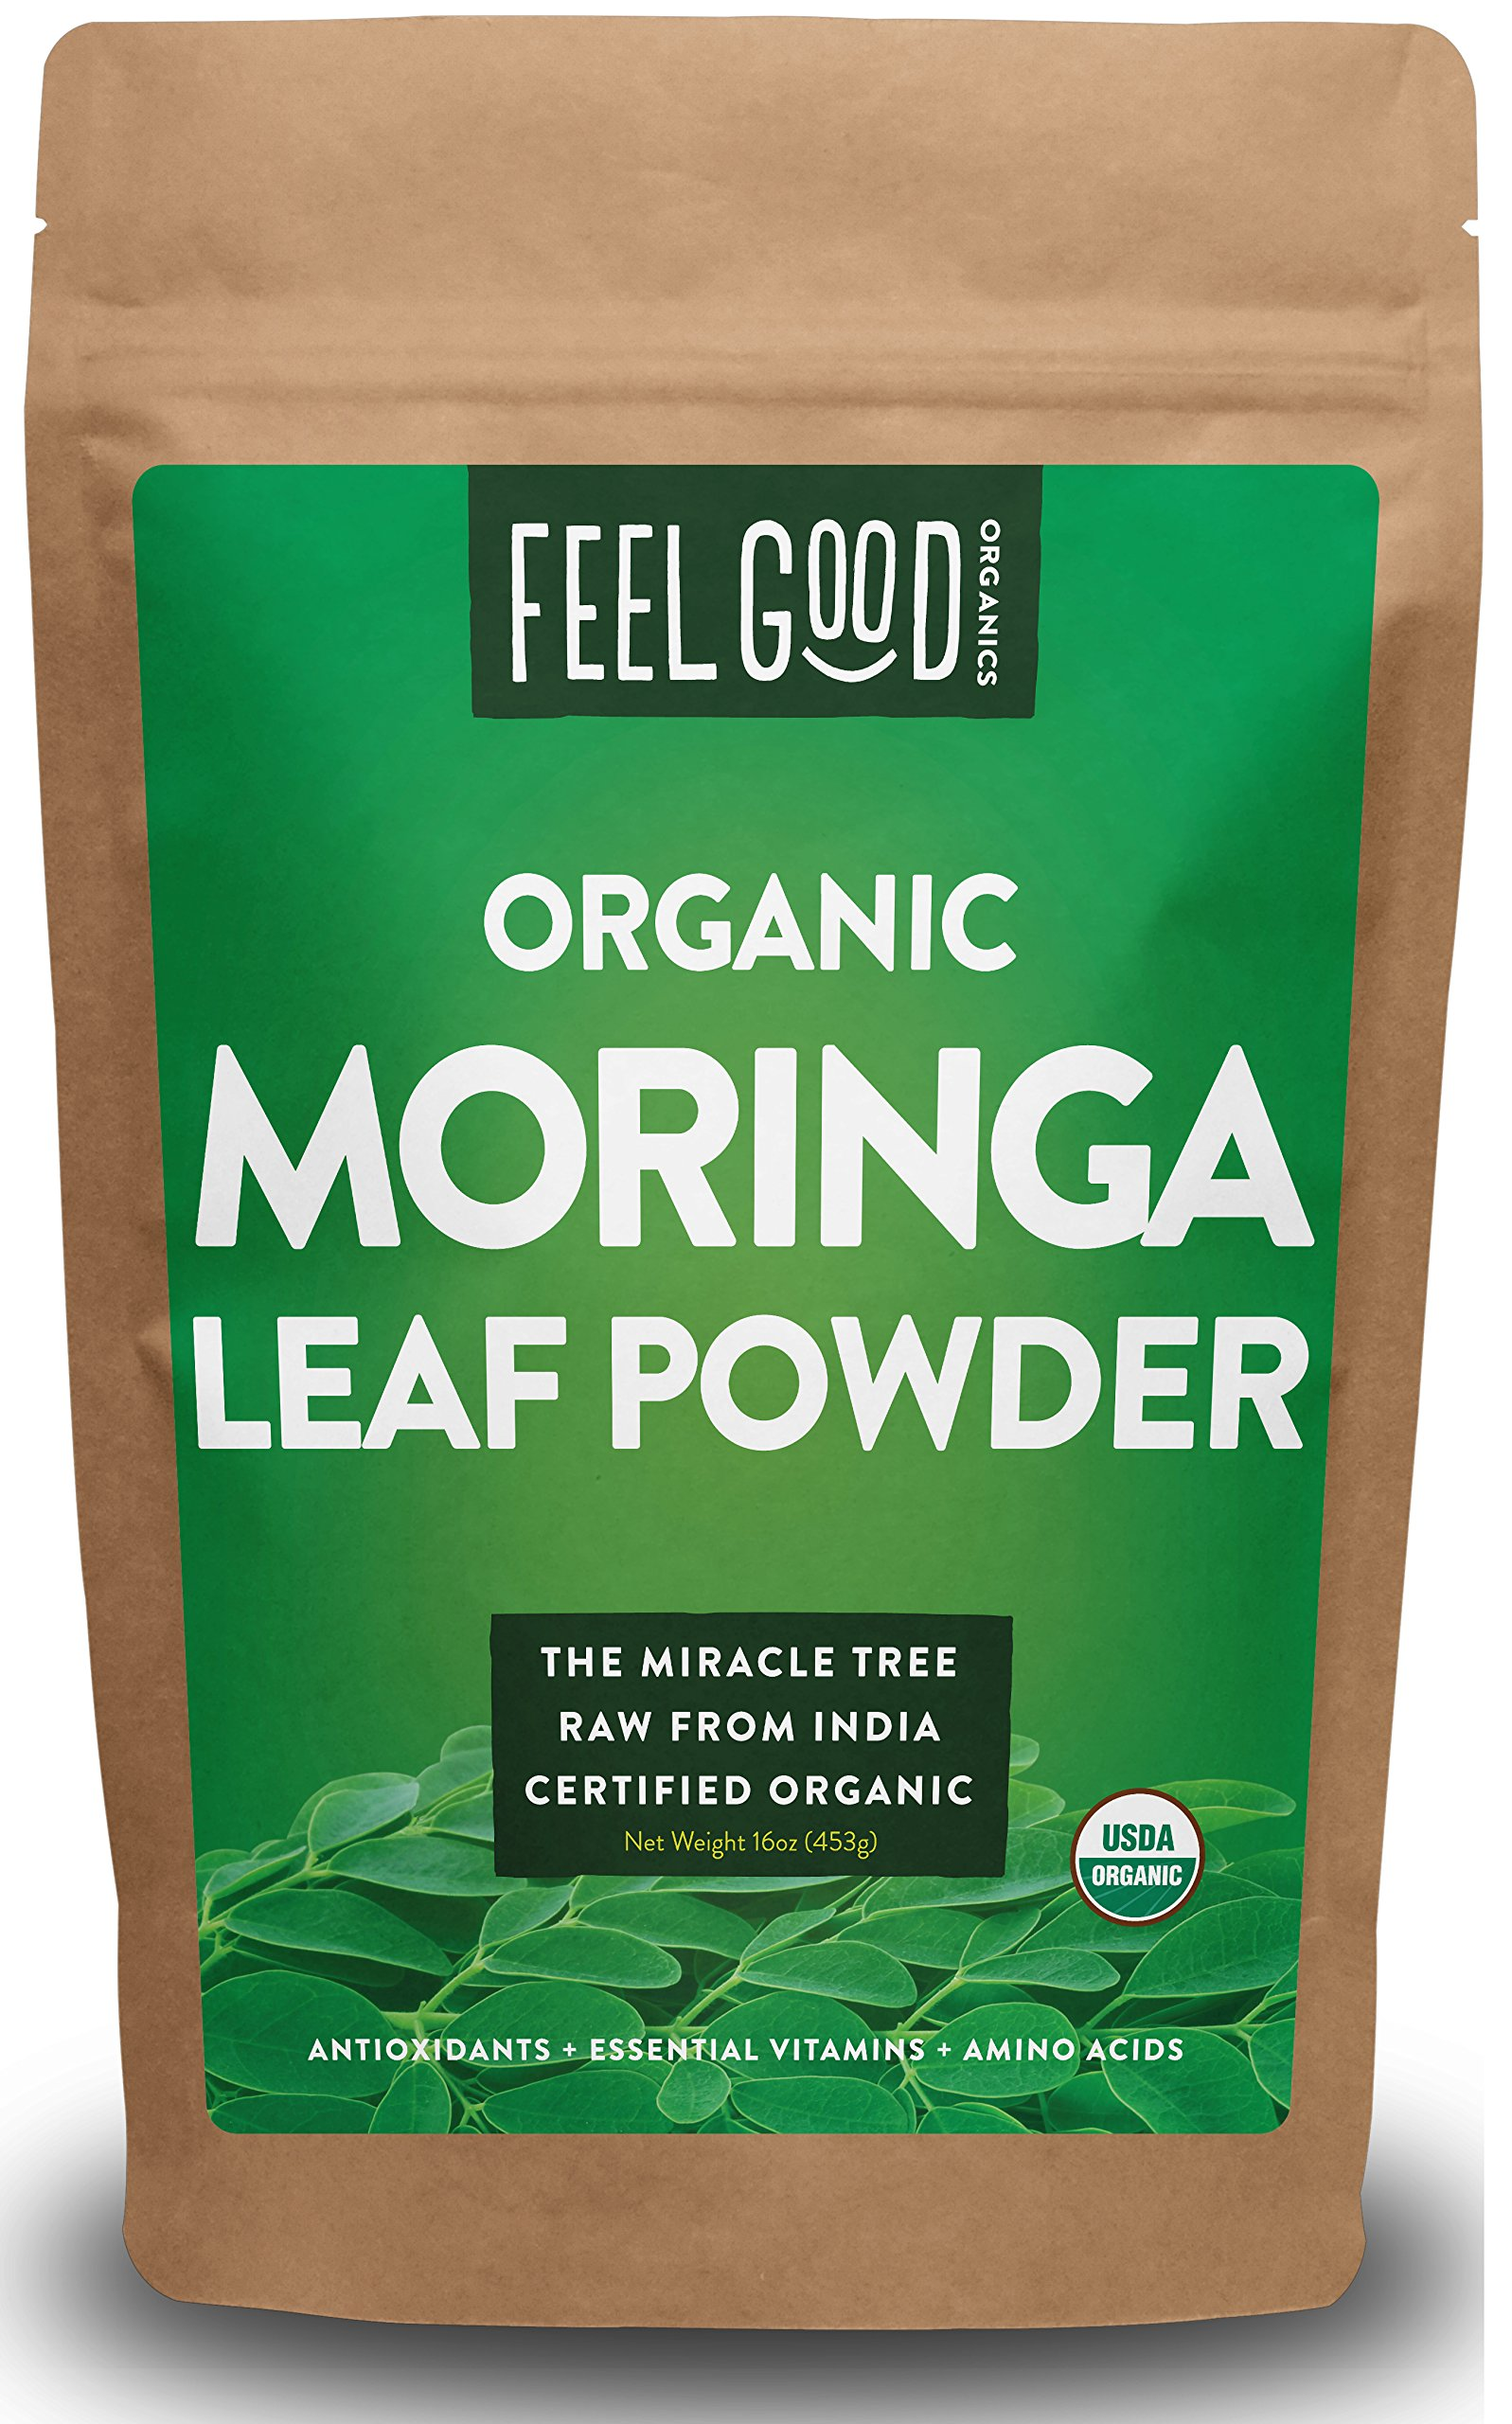 Organic Moringa Leaf Powder - 16oz Resealable Bag (1lb) - 100% Raw From India - by Feel Good Organics by Feel Good Organics